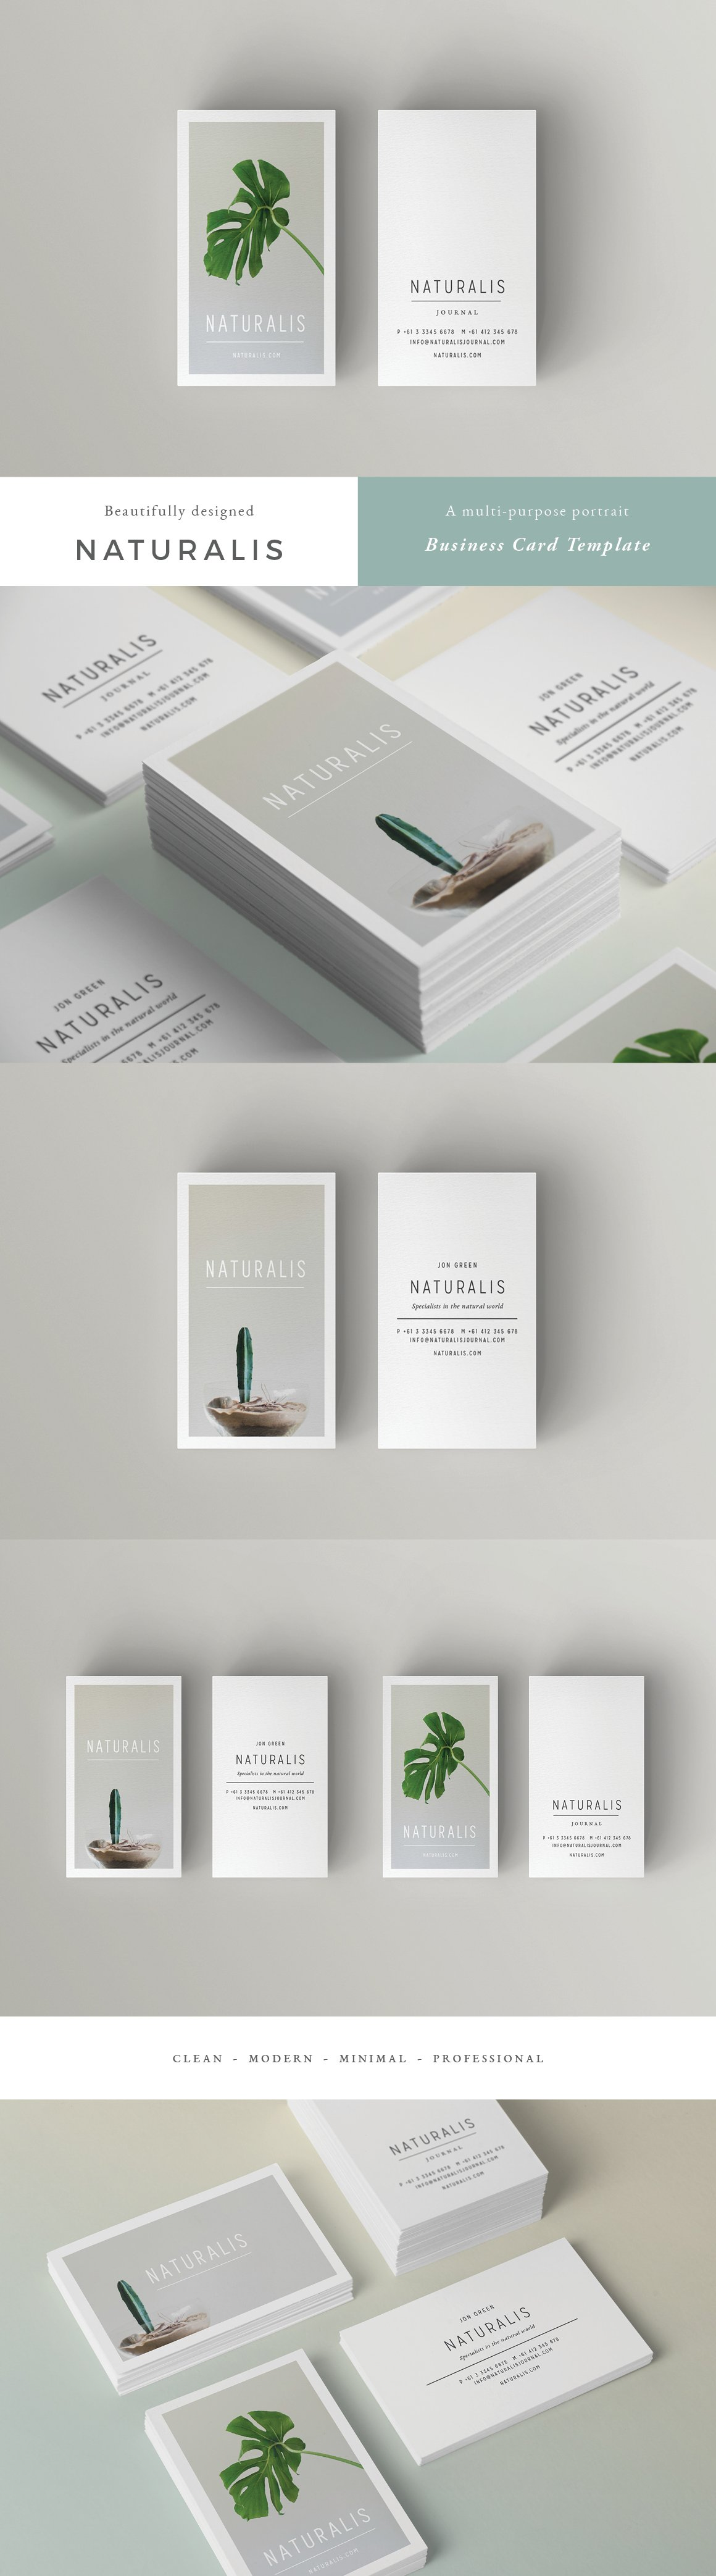 Naturalis business card template business card templates naturalis business card template business card templates creative market colourmoves